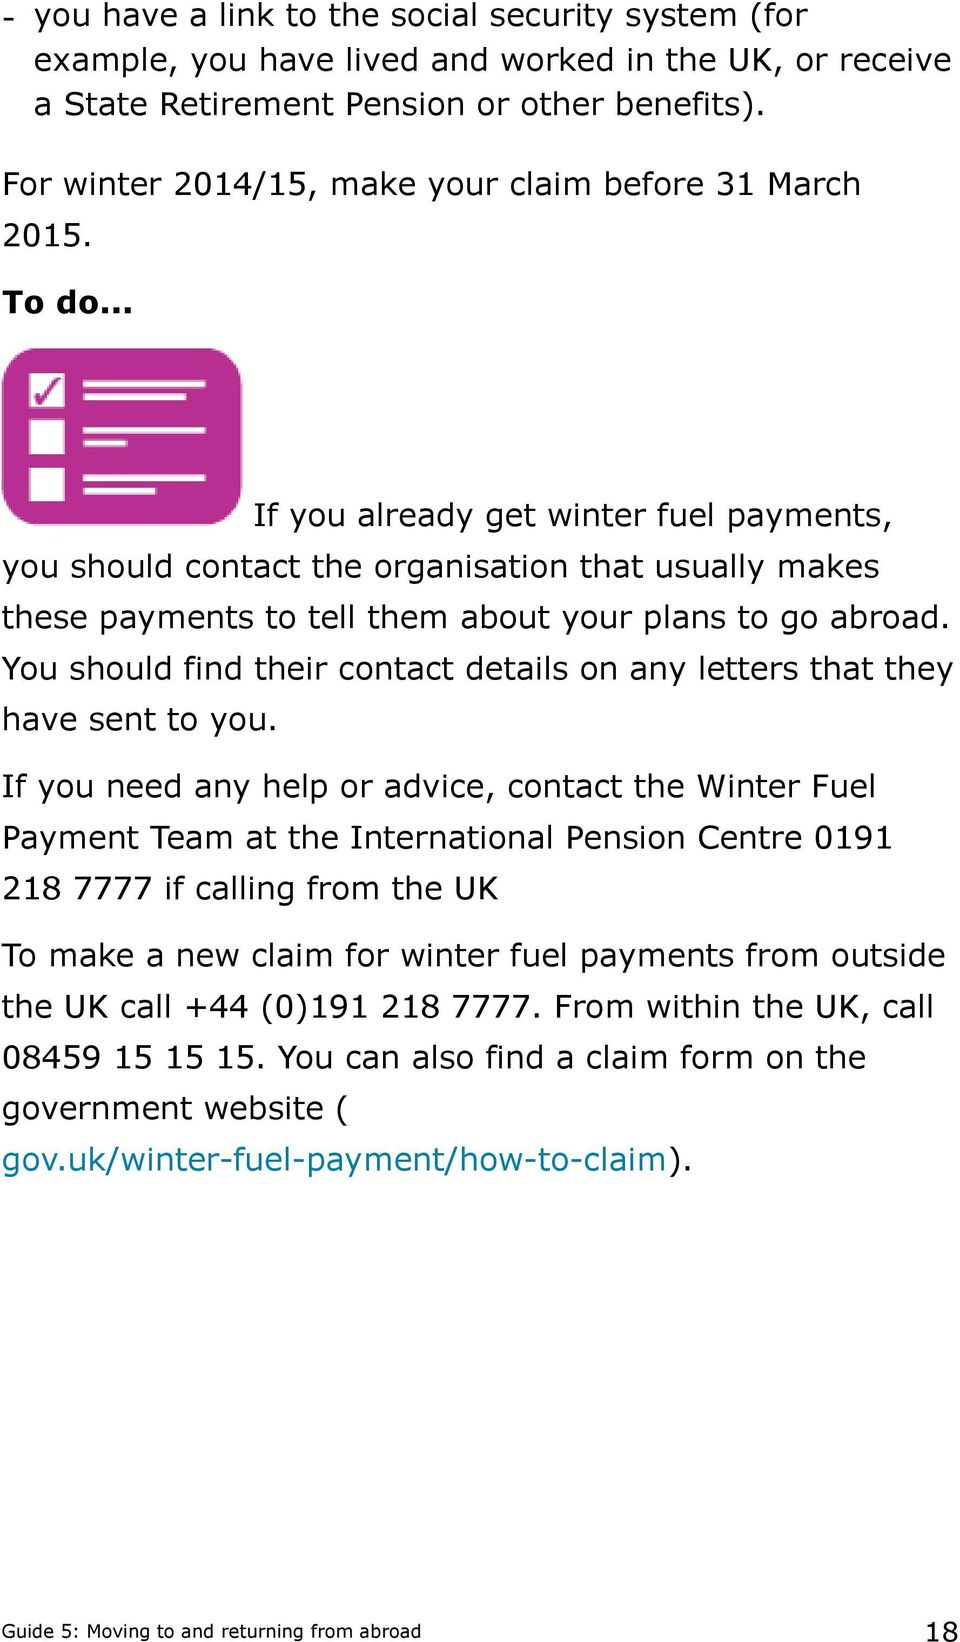 .. If you already get winter fuel payments, you should contact the organisation that usually makes these payments to tell them about your plans to go abroad.